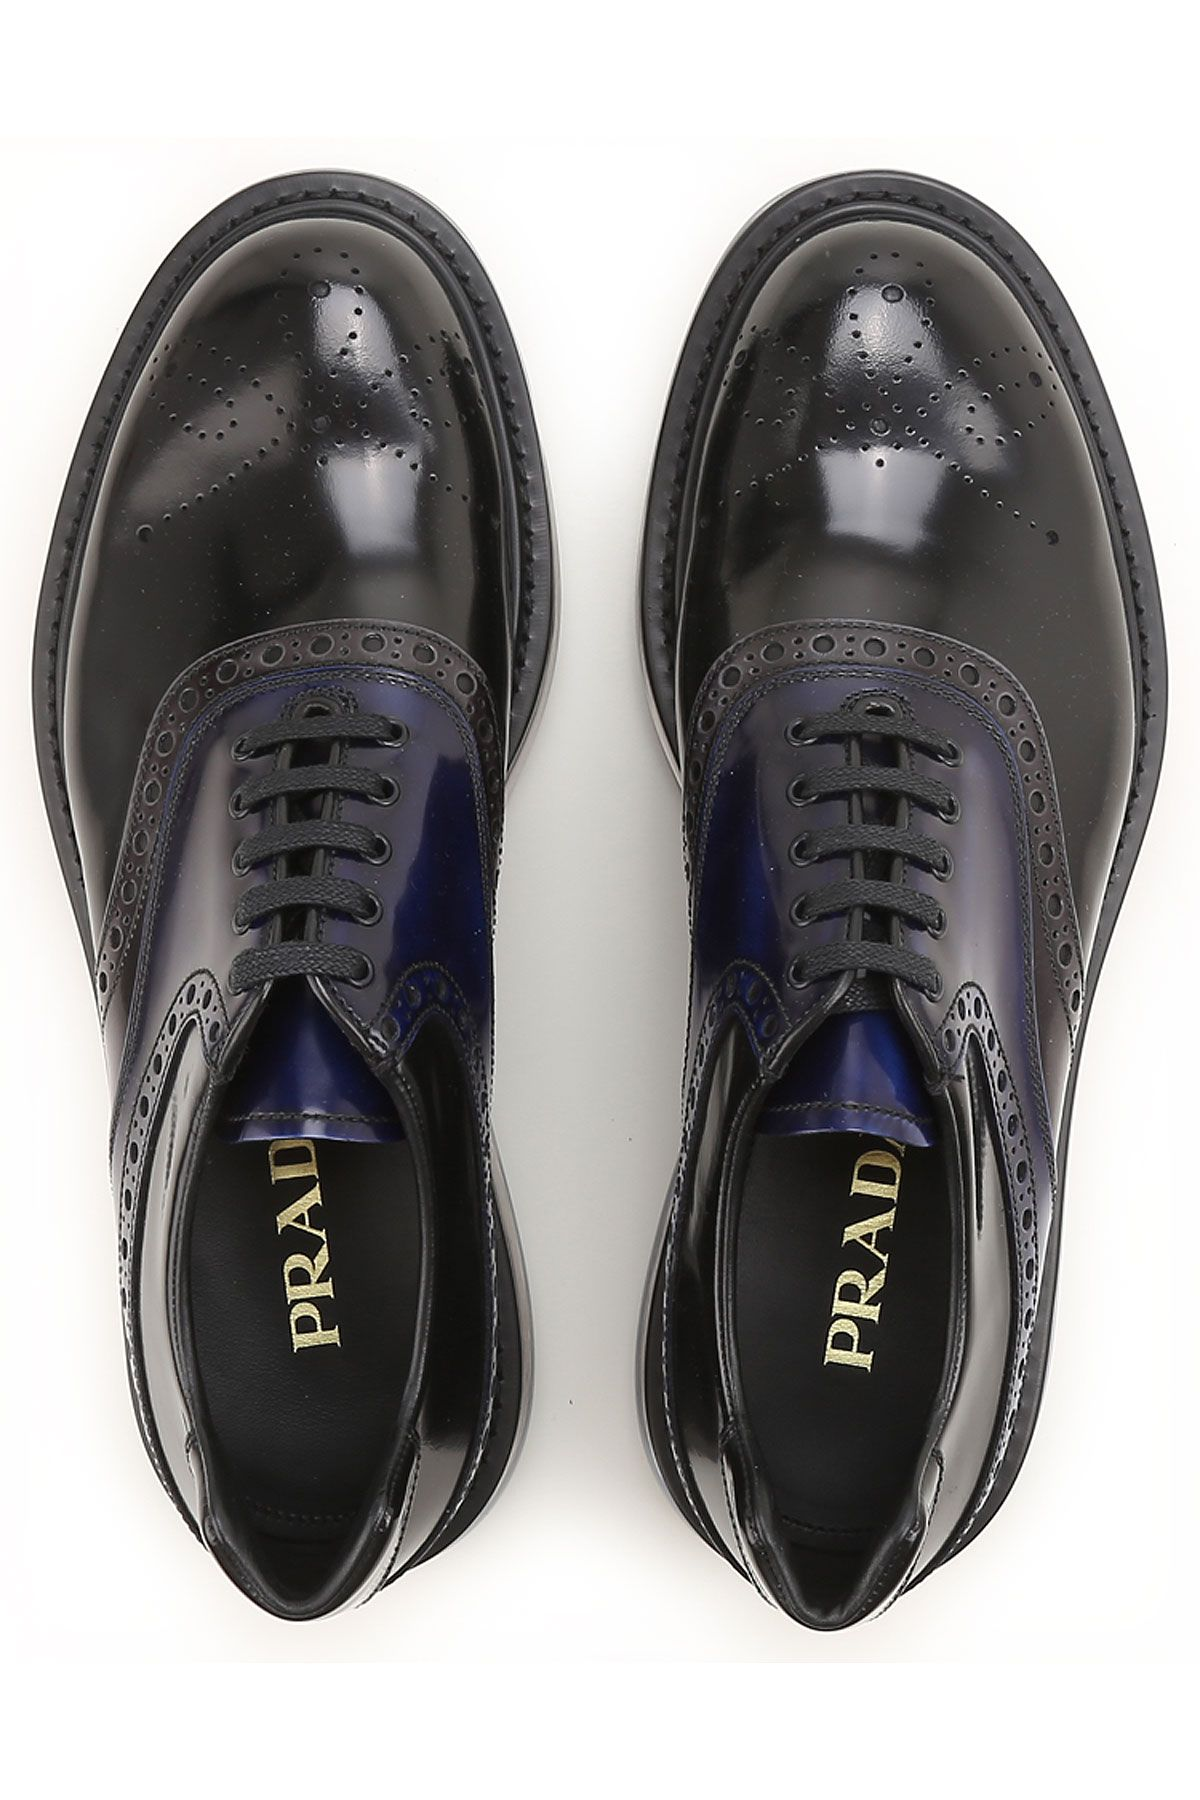 61a0313a7df Prada Fashion Men s Homme Footwear Chaussures Mens v4vqA